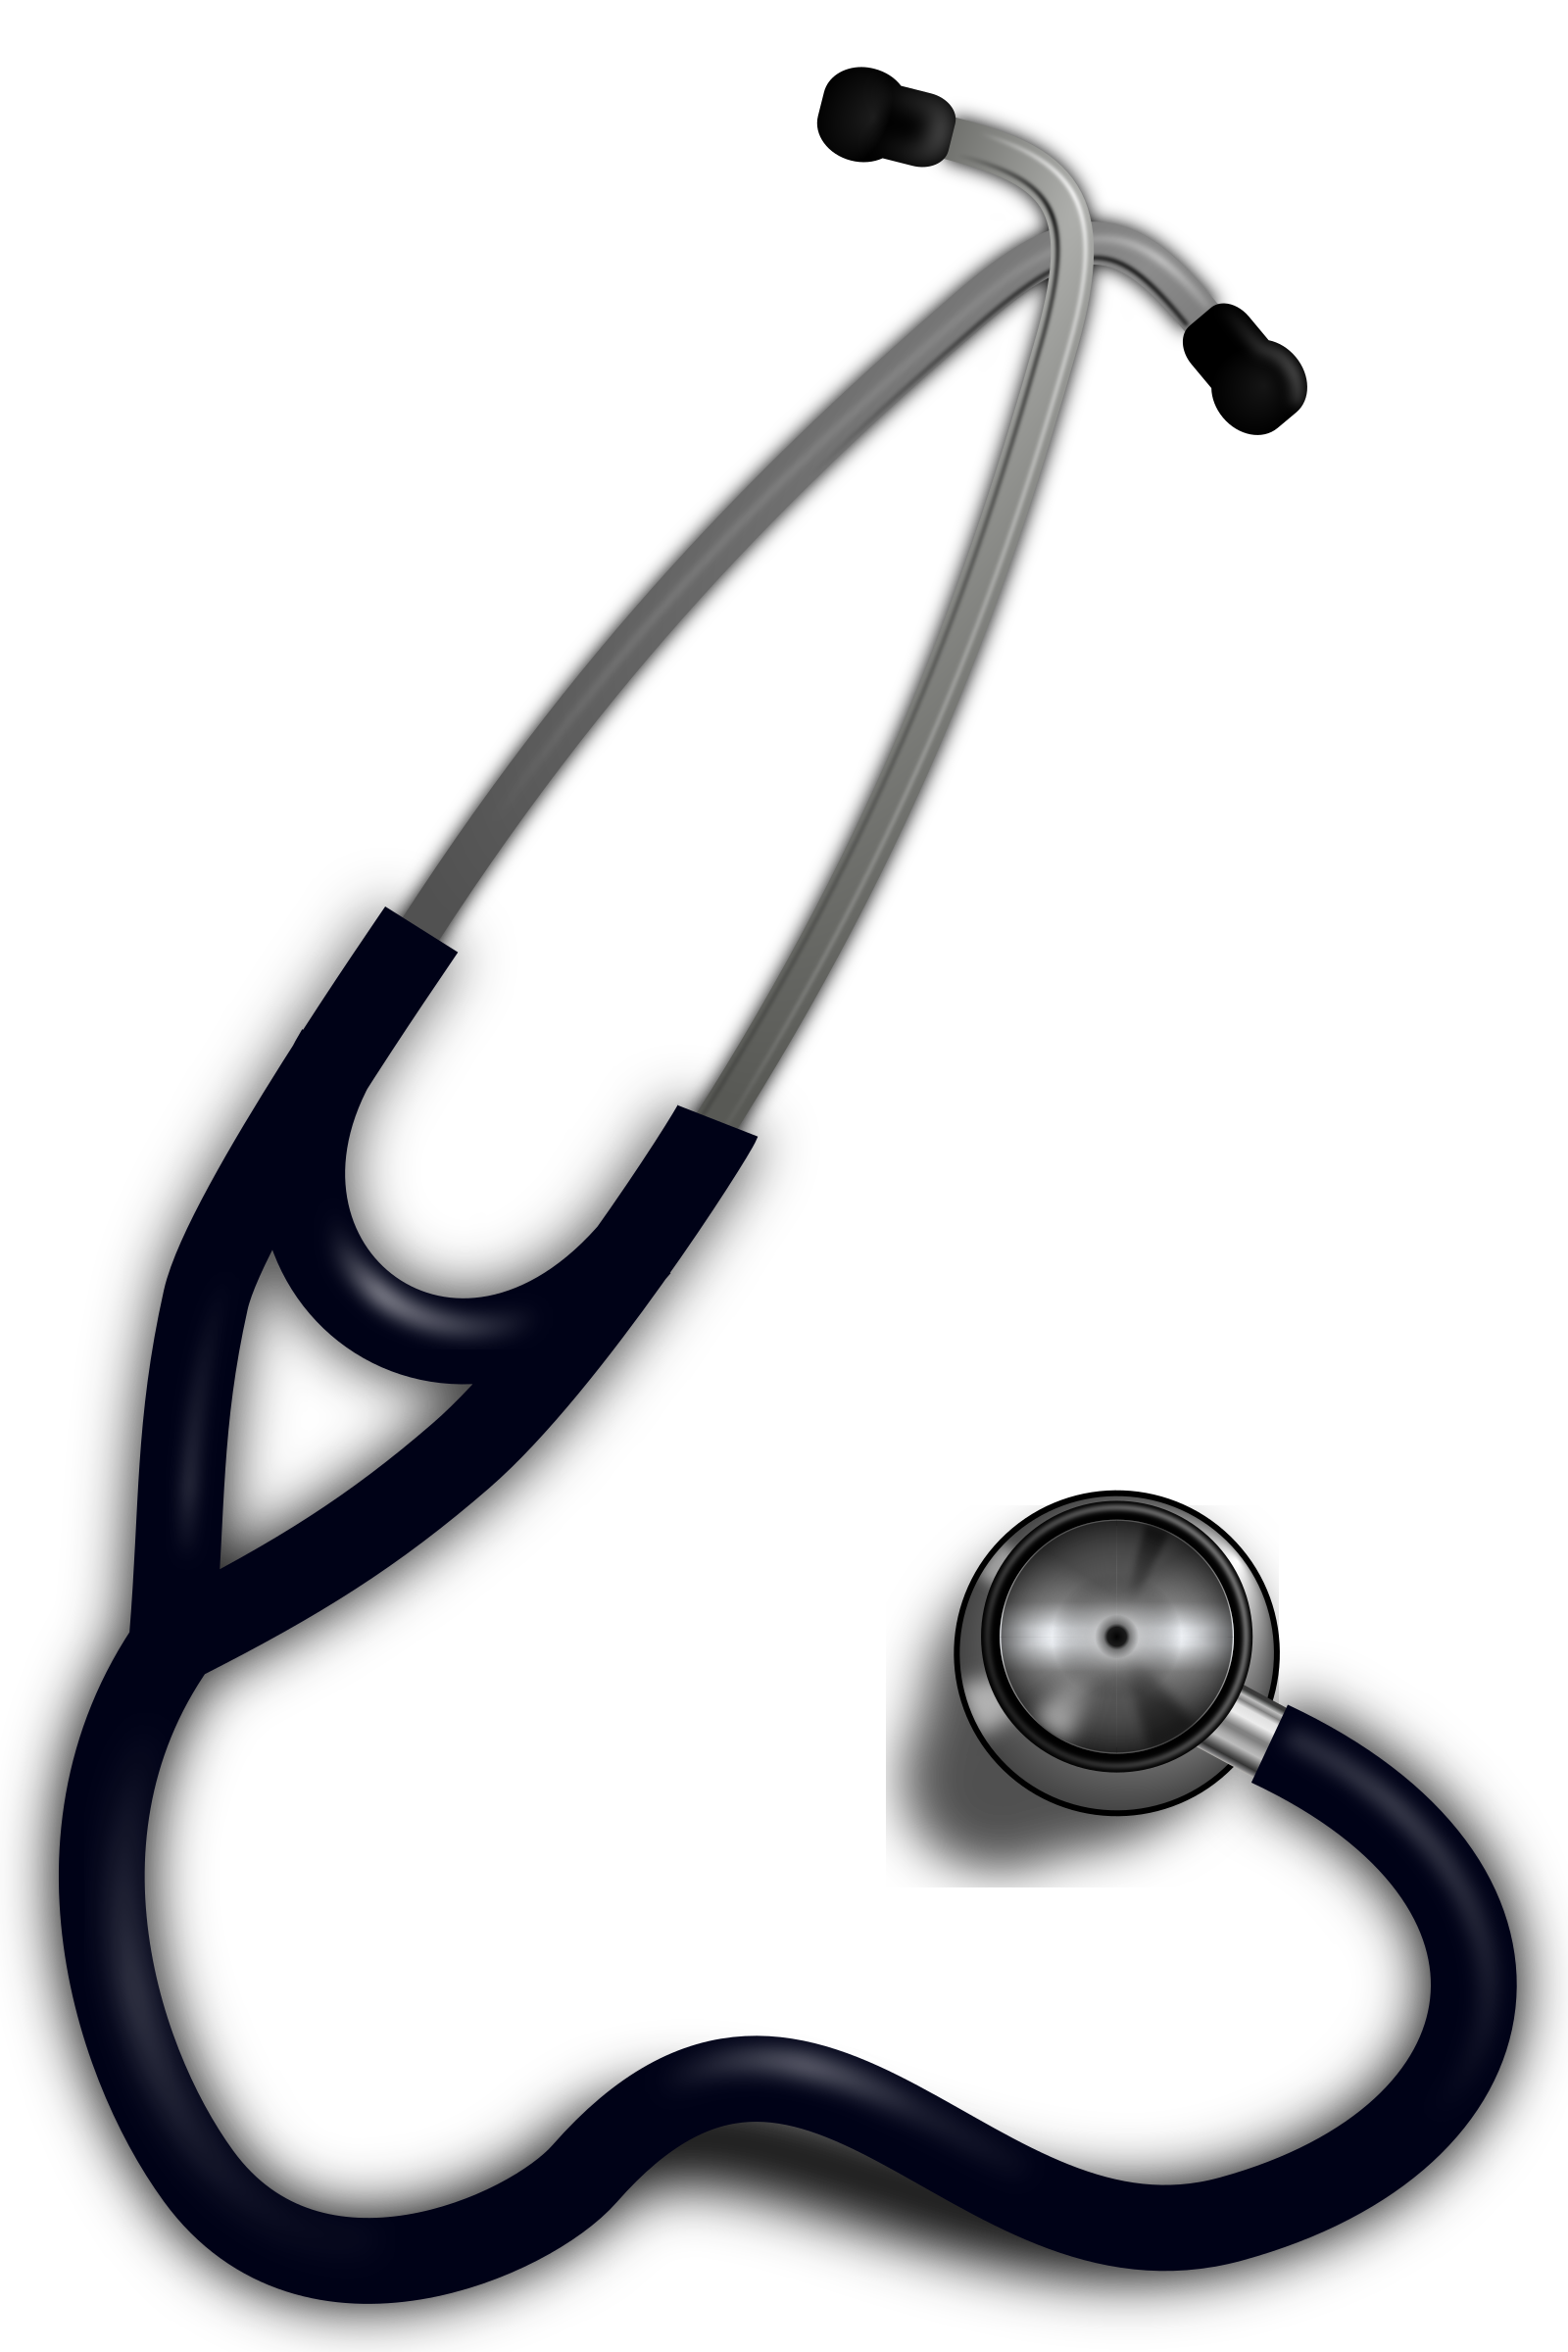 Heart stethoscope clipart svg black and white Clipart - Stethoscope svg black and white